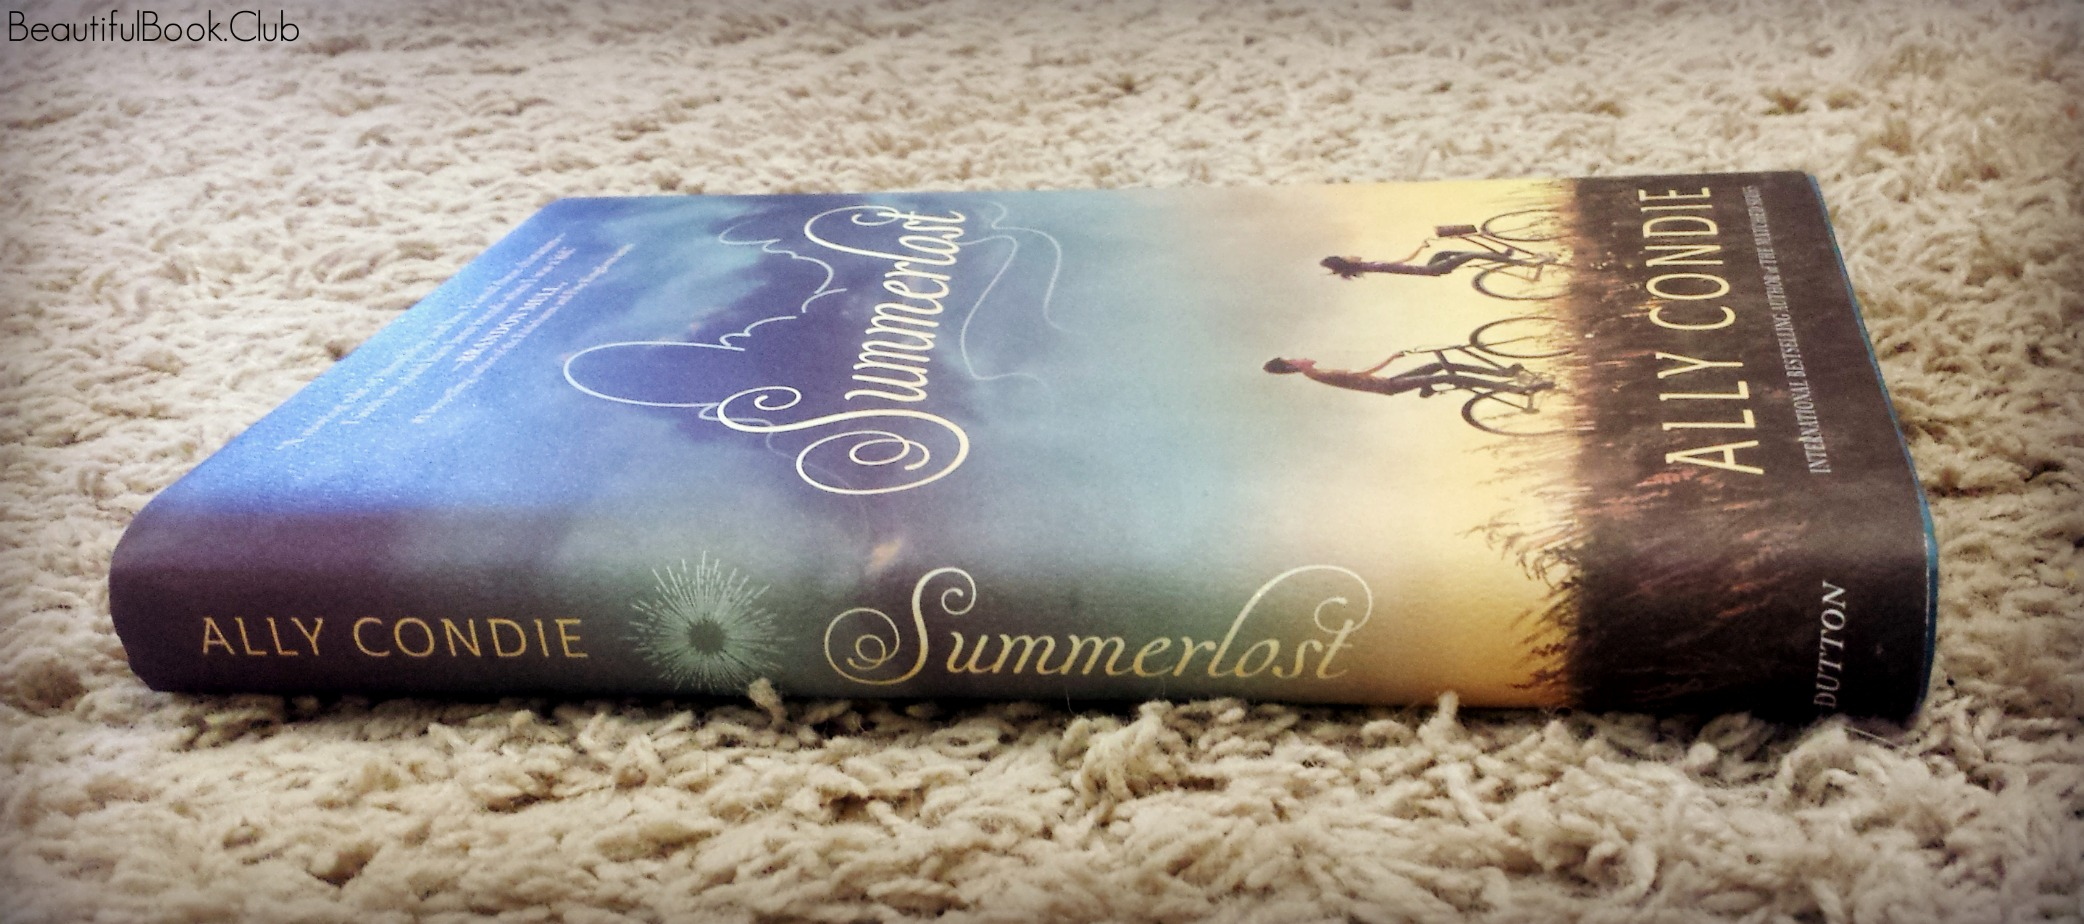 Summerlost by Ally Condie spine